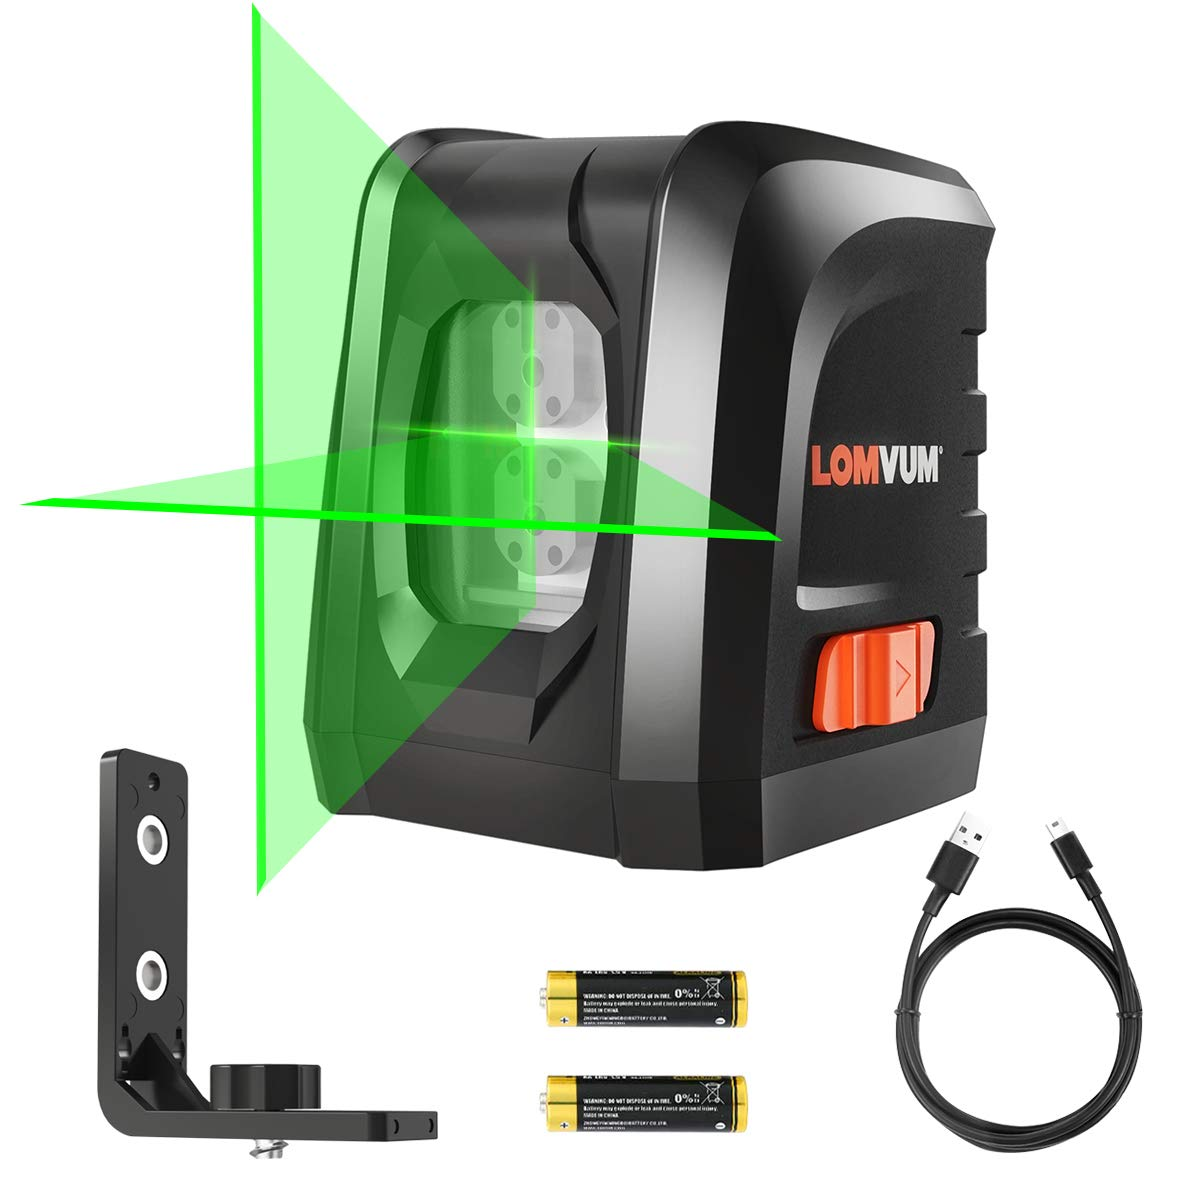 LOMVUM 3 Mode Green Laser Level 100ft Self-Leveling Horizontal//Vertical Line and Cross-Line with Dual Laser Sources Laser Level Battery Included Magnetic Pivoting Base